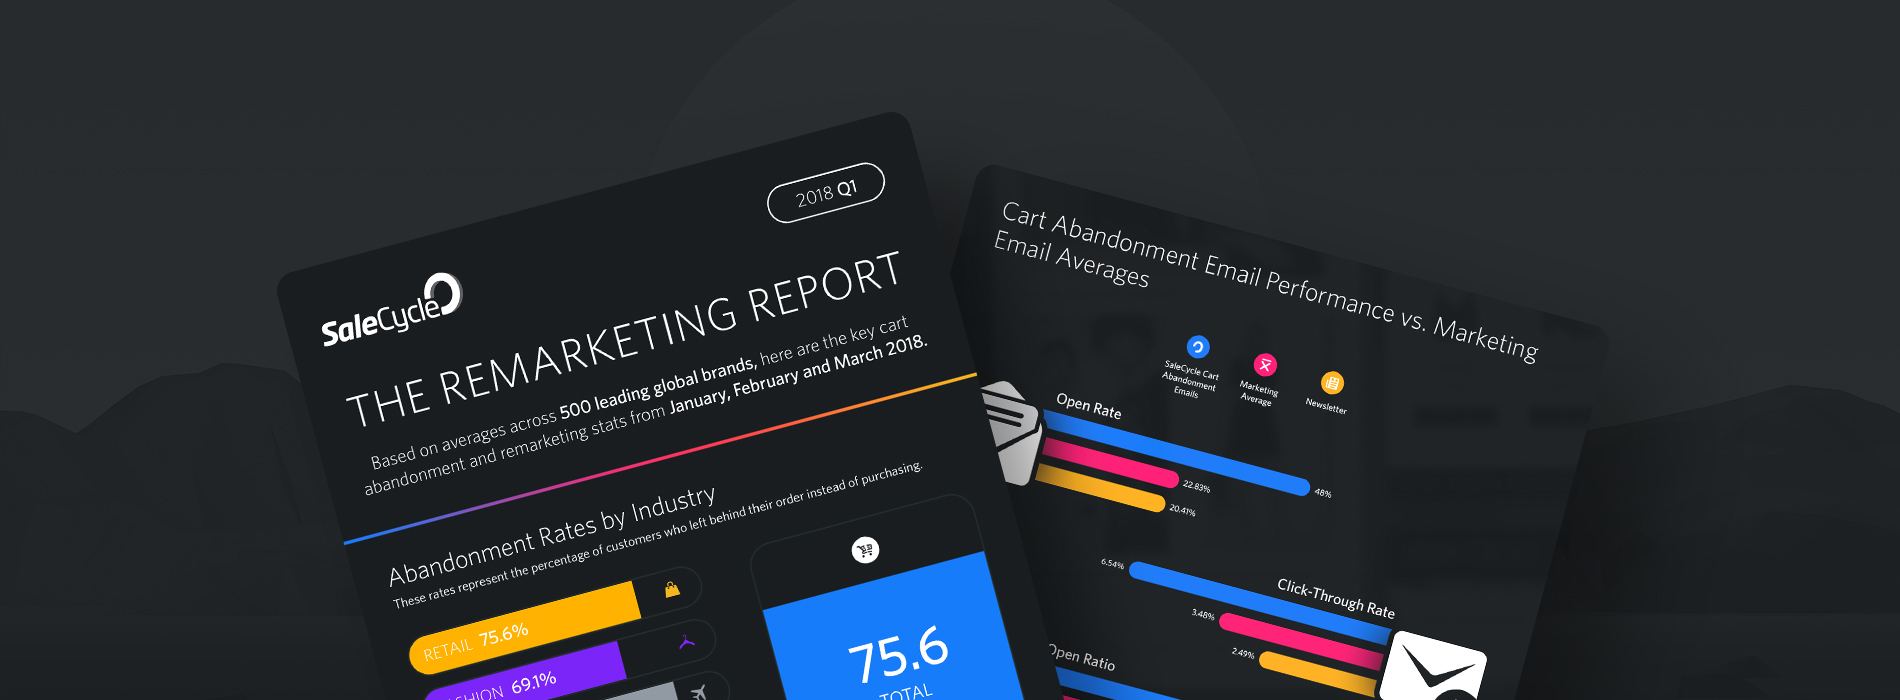 [Infographic] The Remarketing Report – Q1 2018